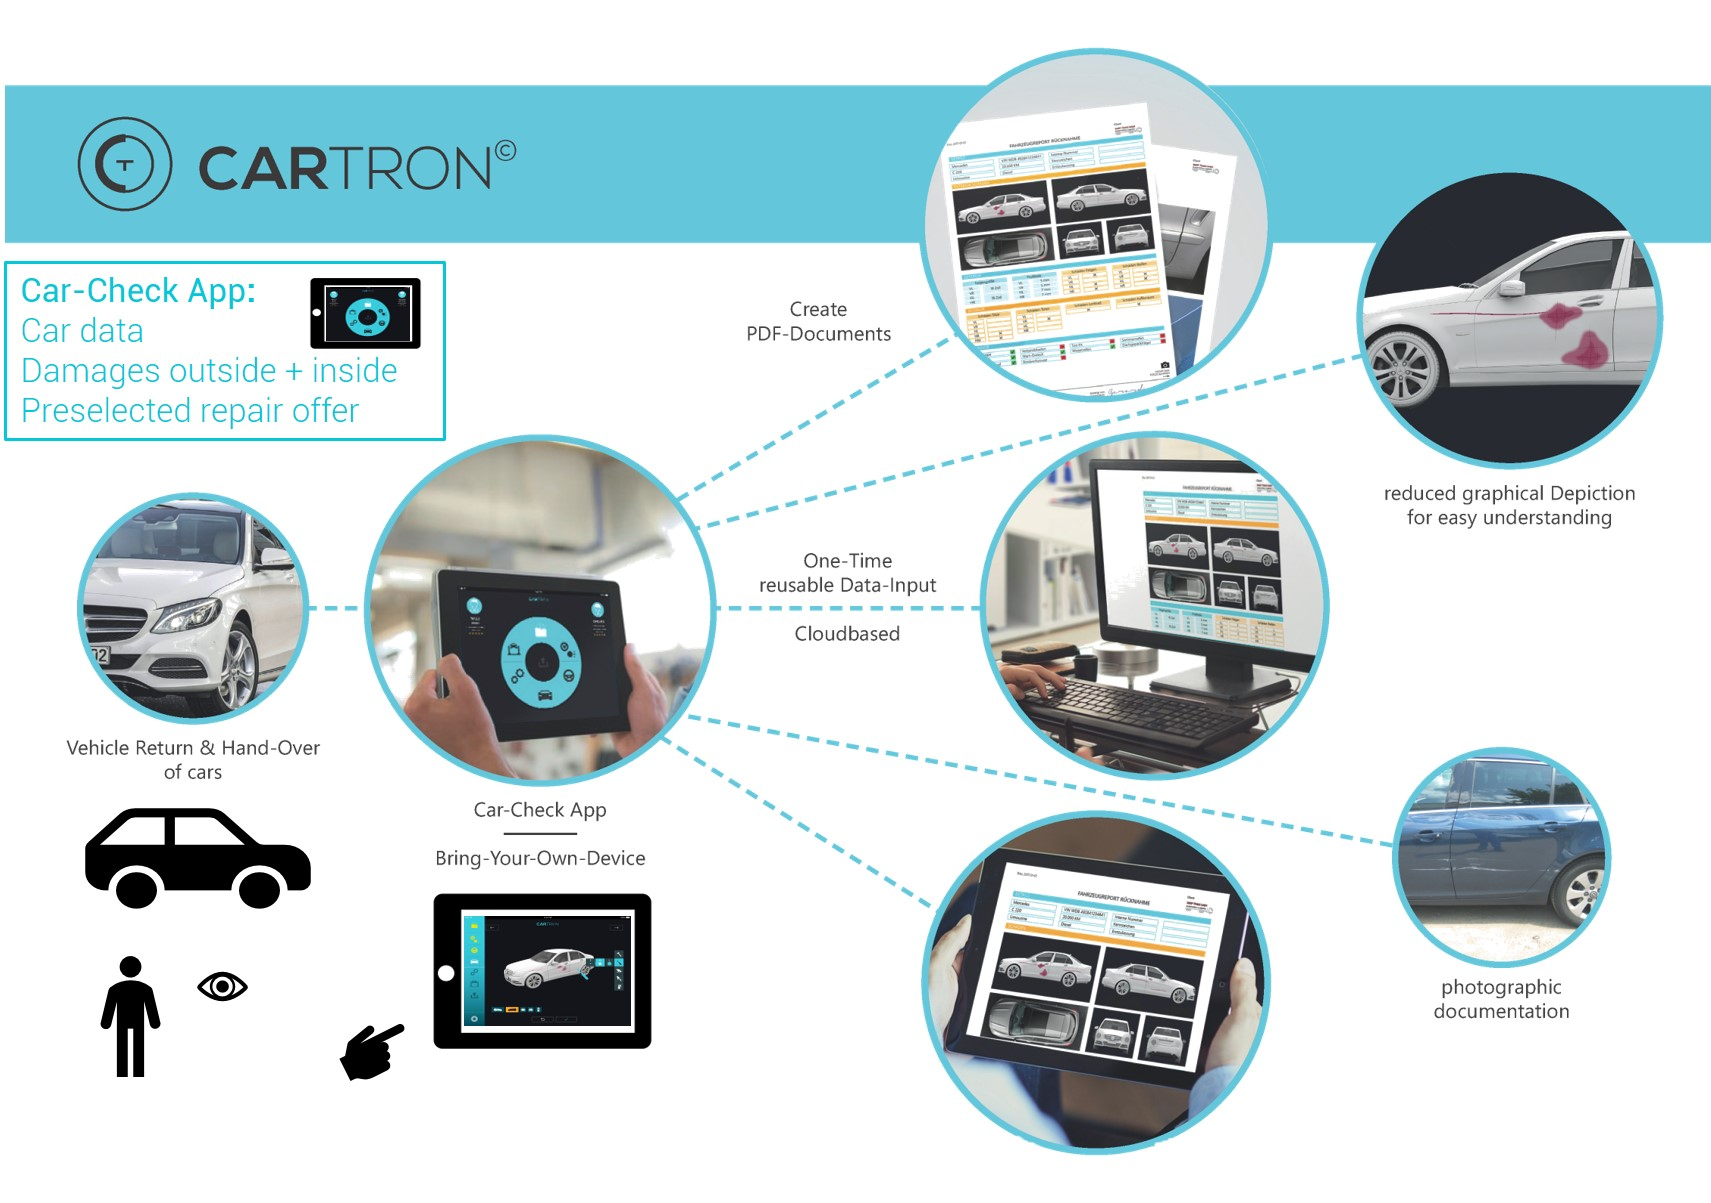 CarTron Infographic